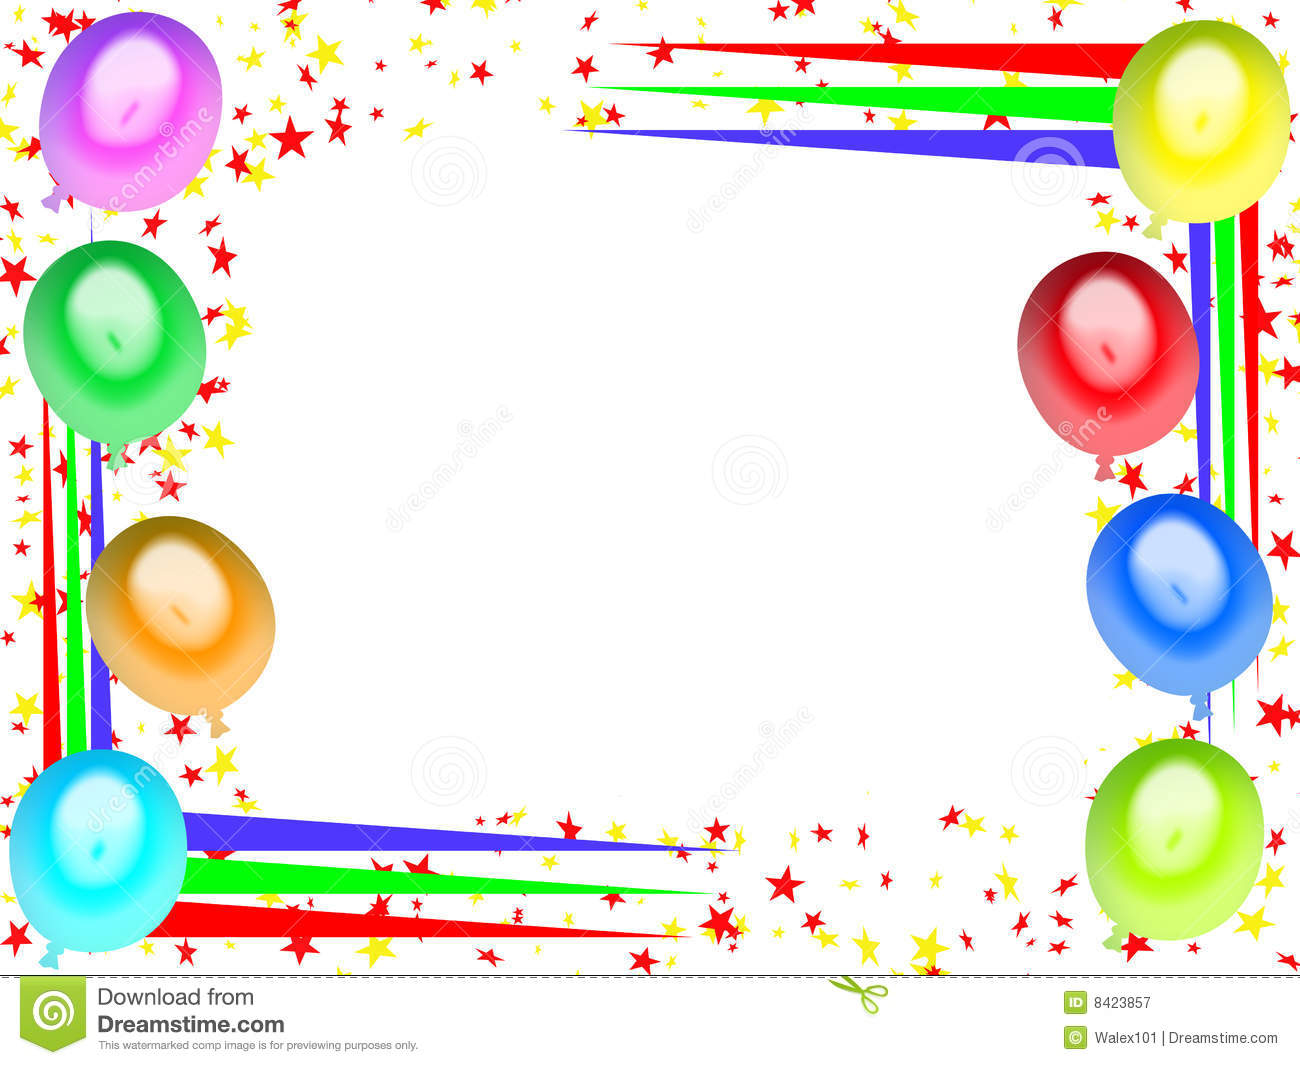 Royalty Free Stock Photography Happy Birthday Card 06 Image8423857 on Kids Happy Birthday Transparent Frame